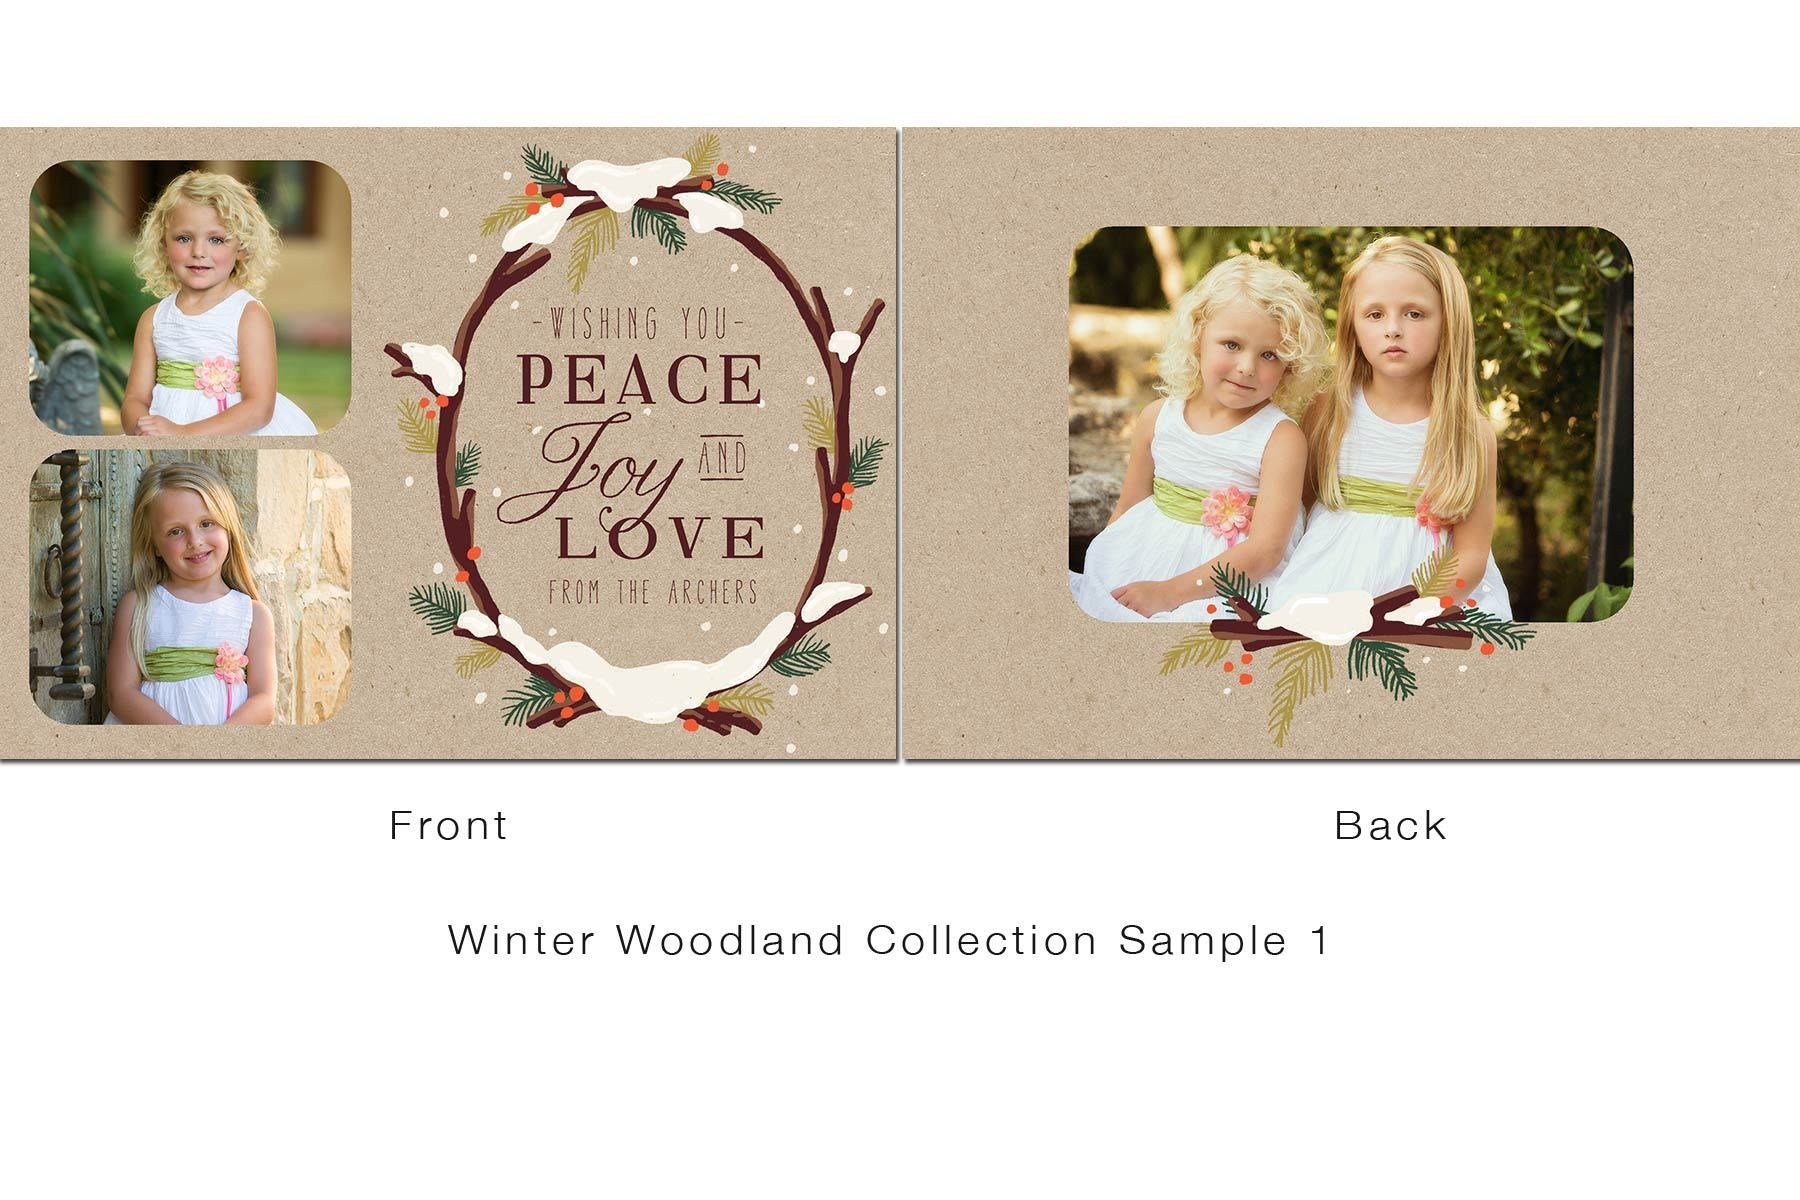 1winter_woodland_collection_sample_1.jpg